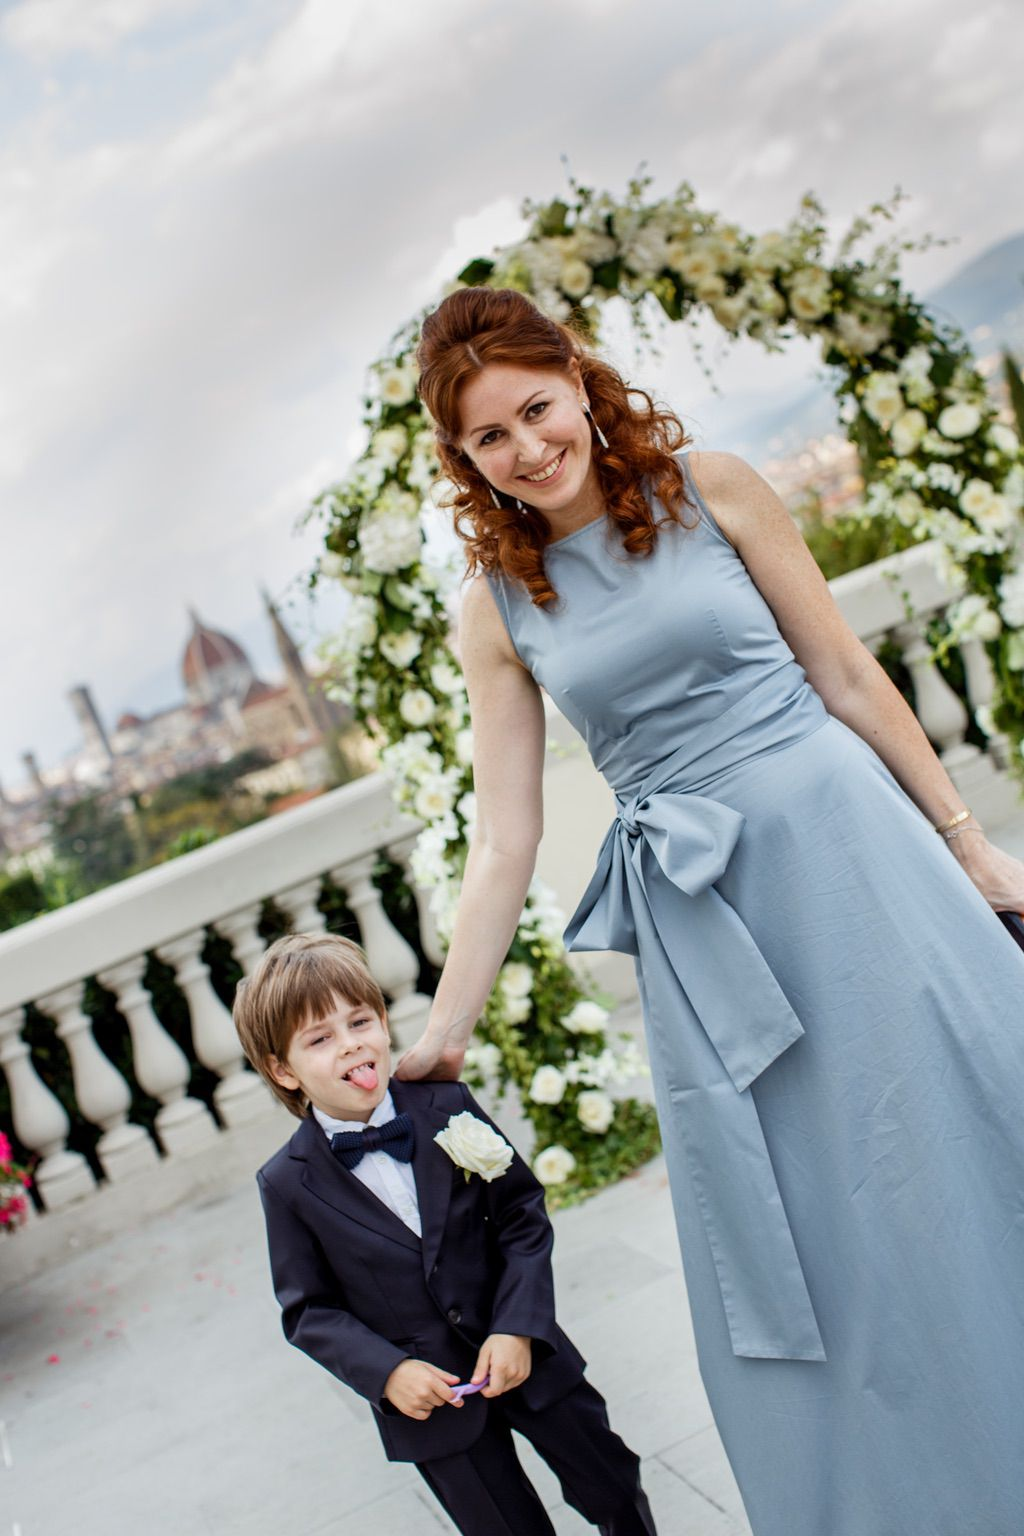 guests luxury wedding blessing ceremony in Italy